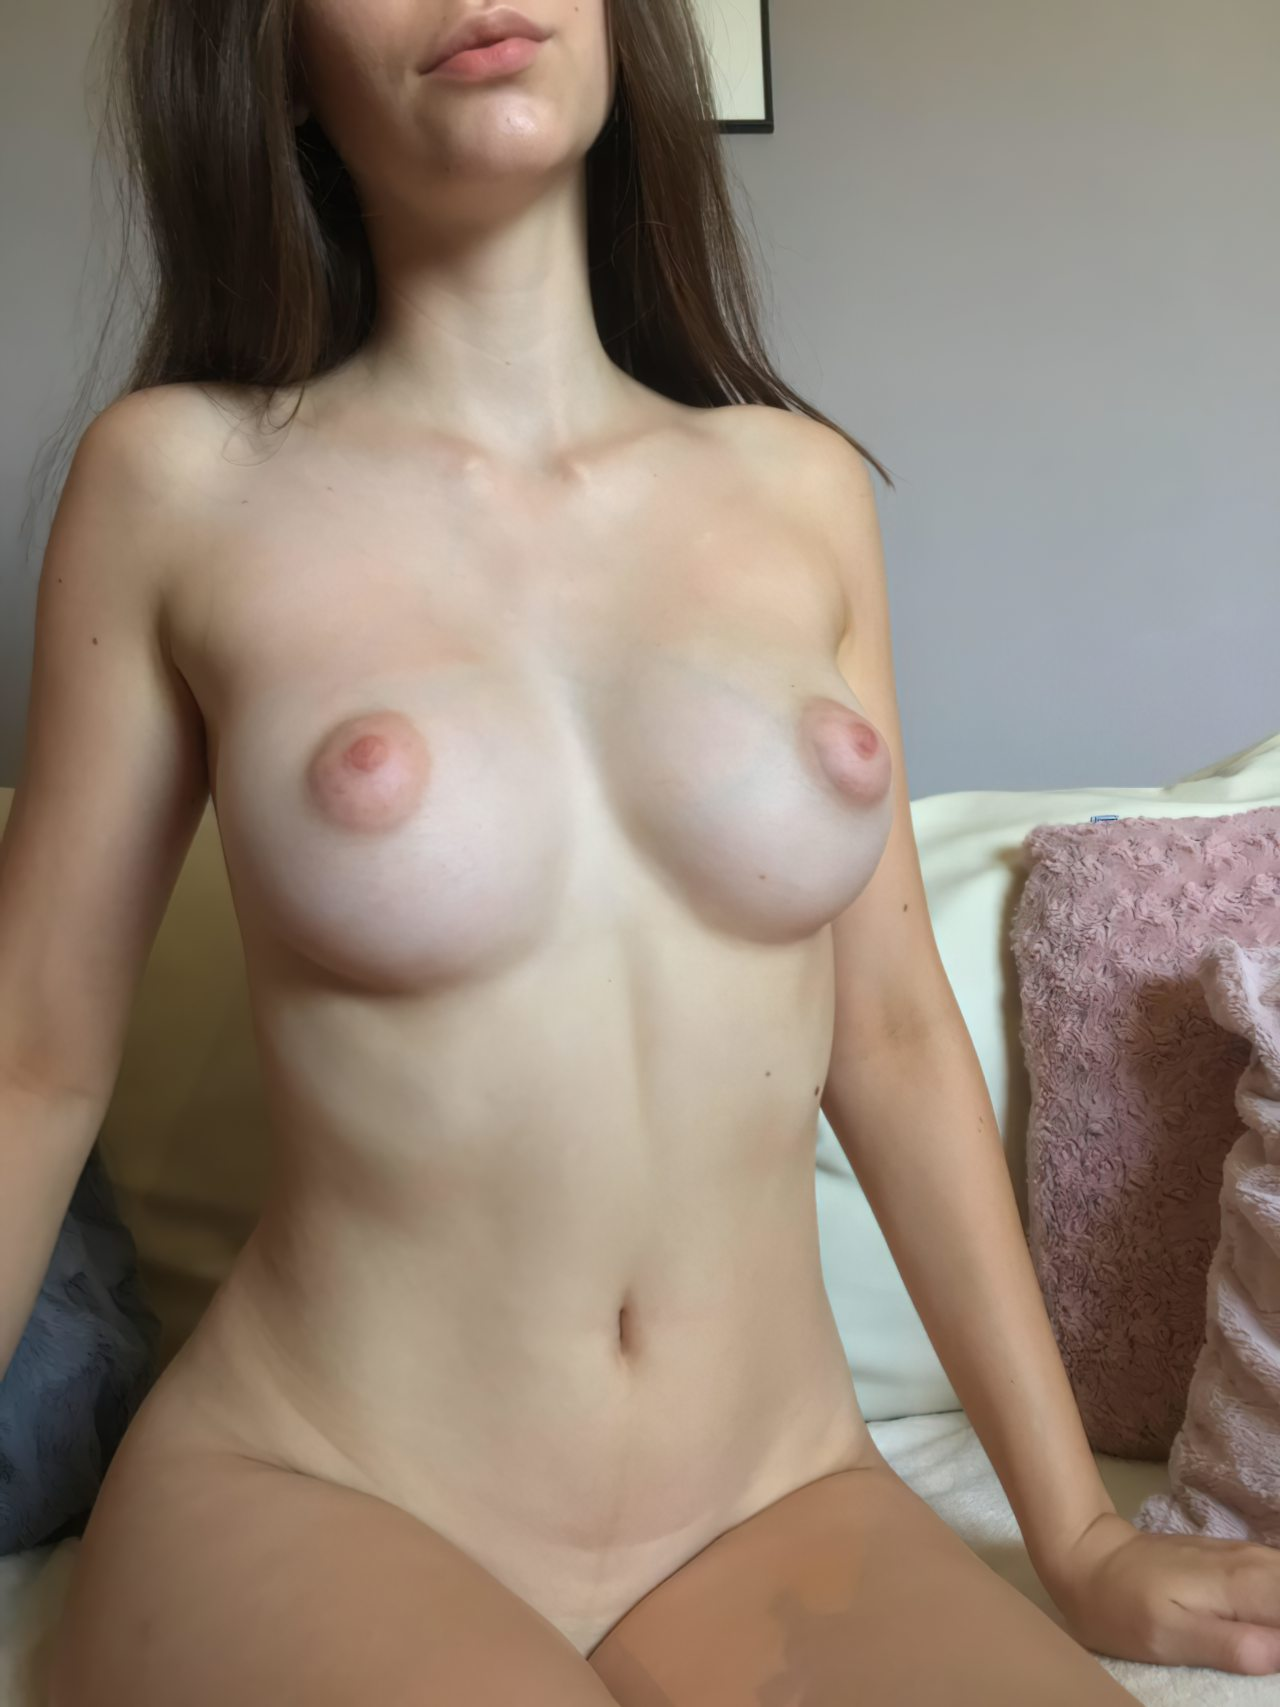 Topless (84)